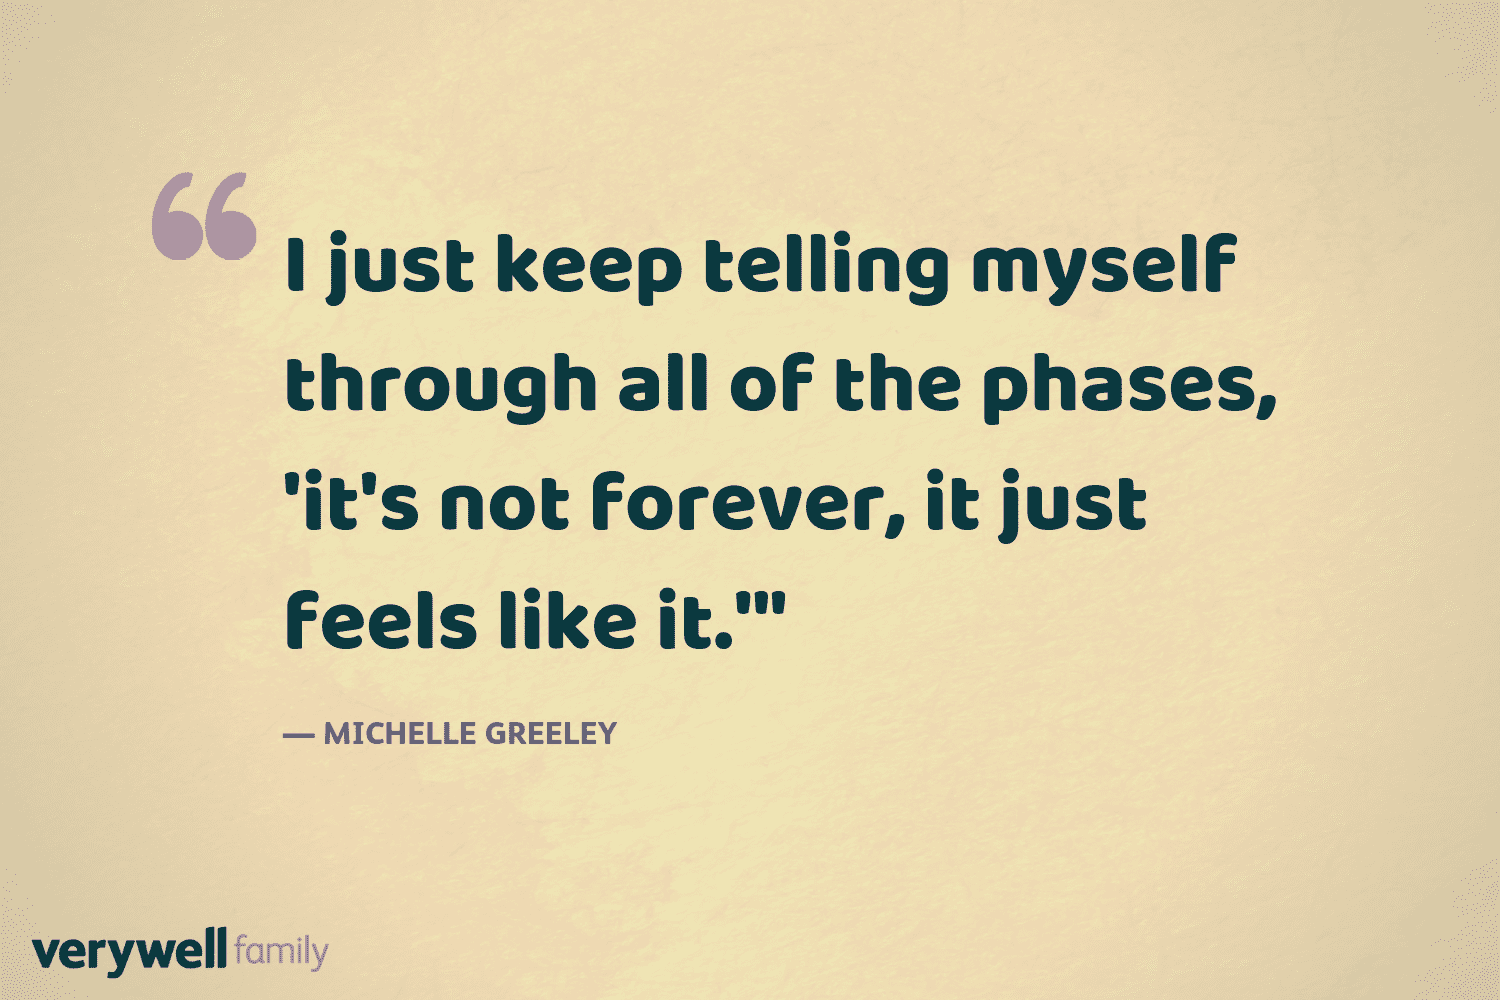 Verywell Family postpartum quote by Michelle Greeley